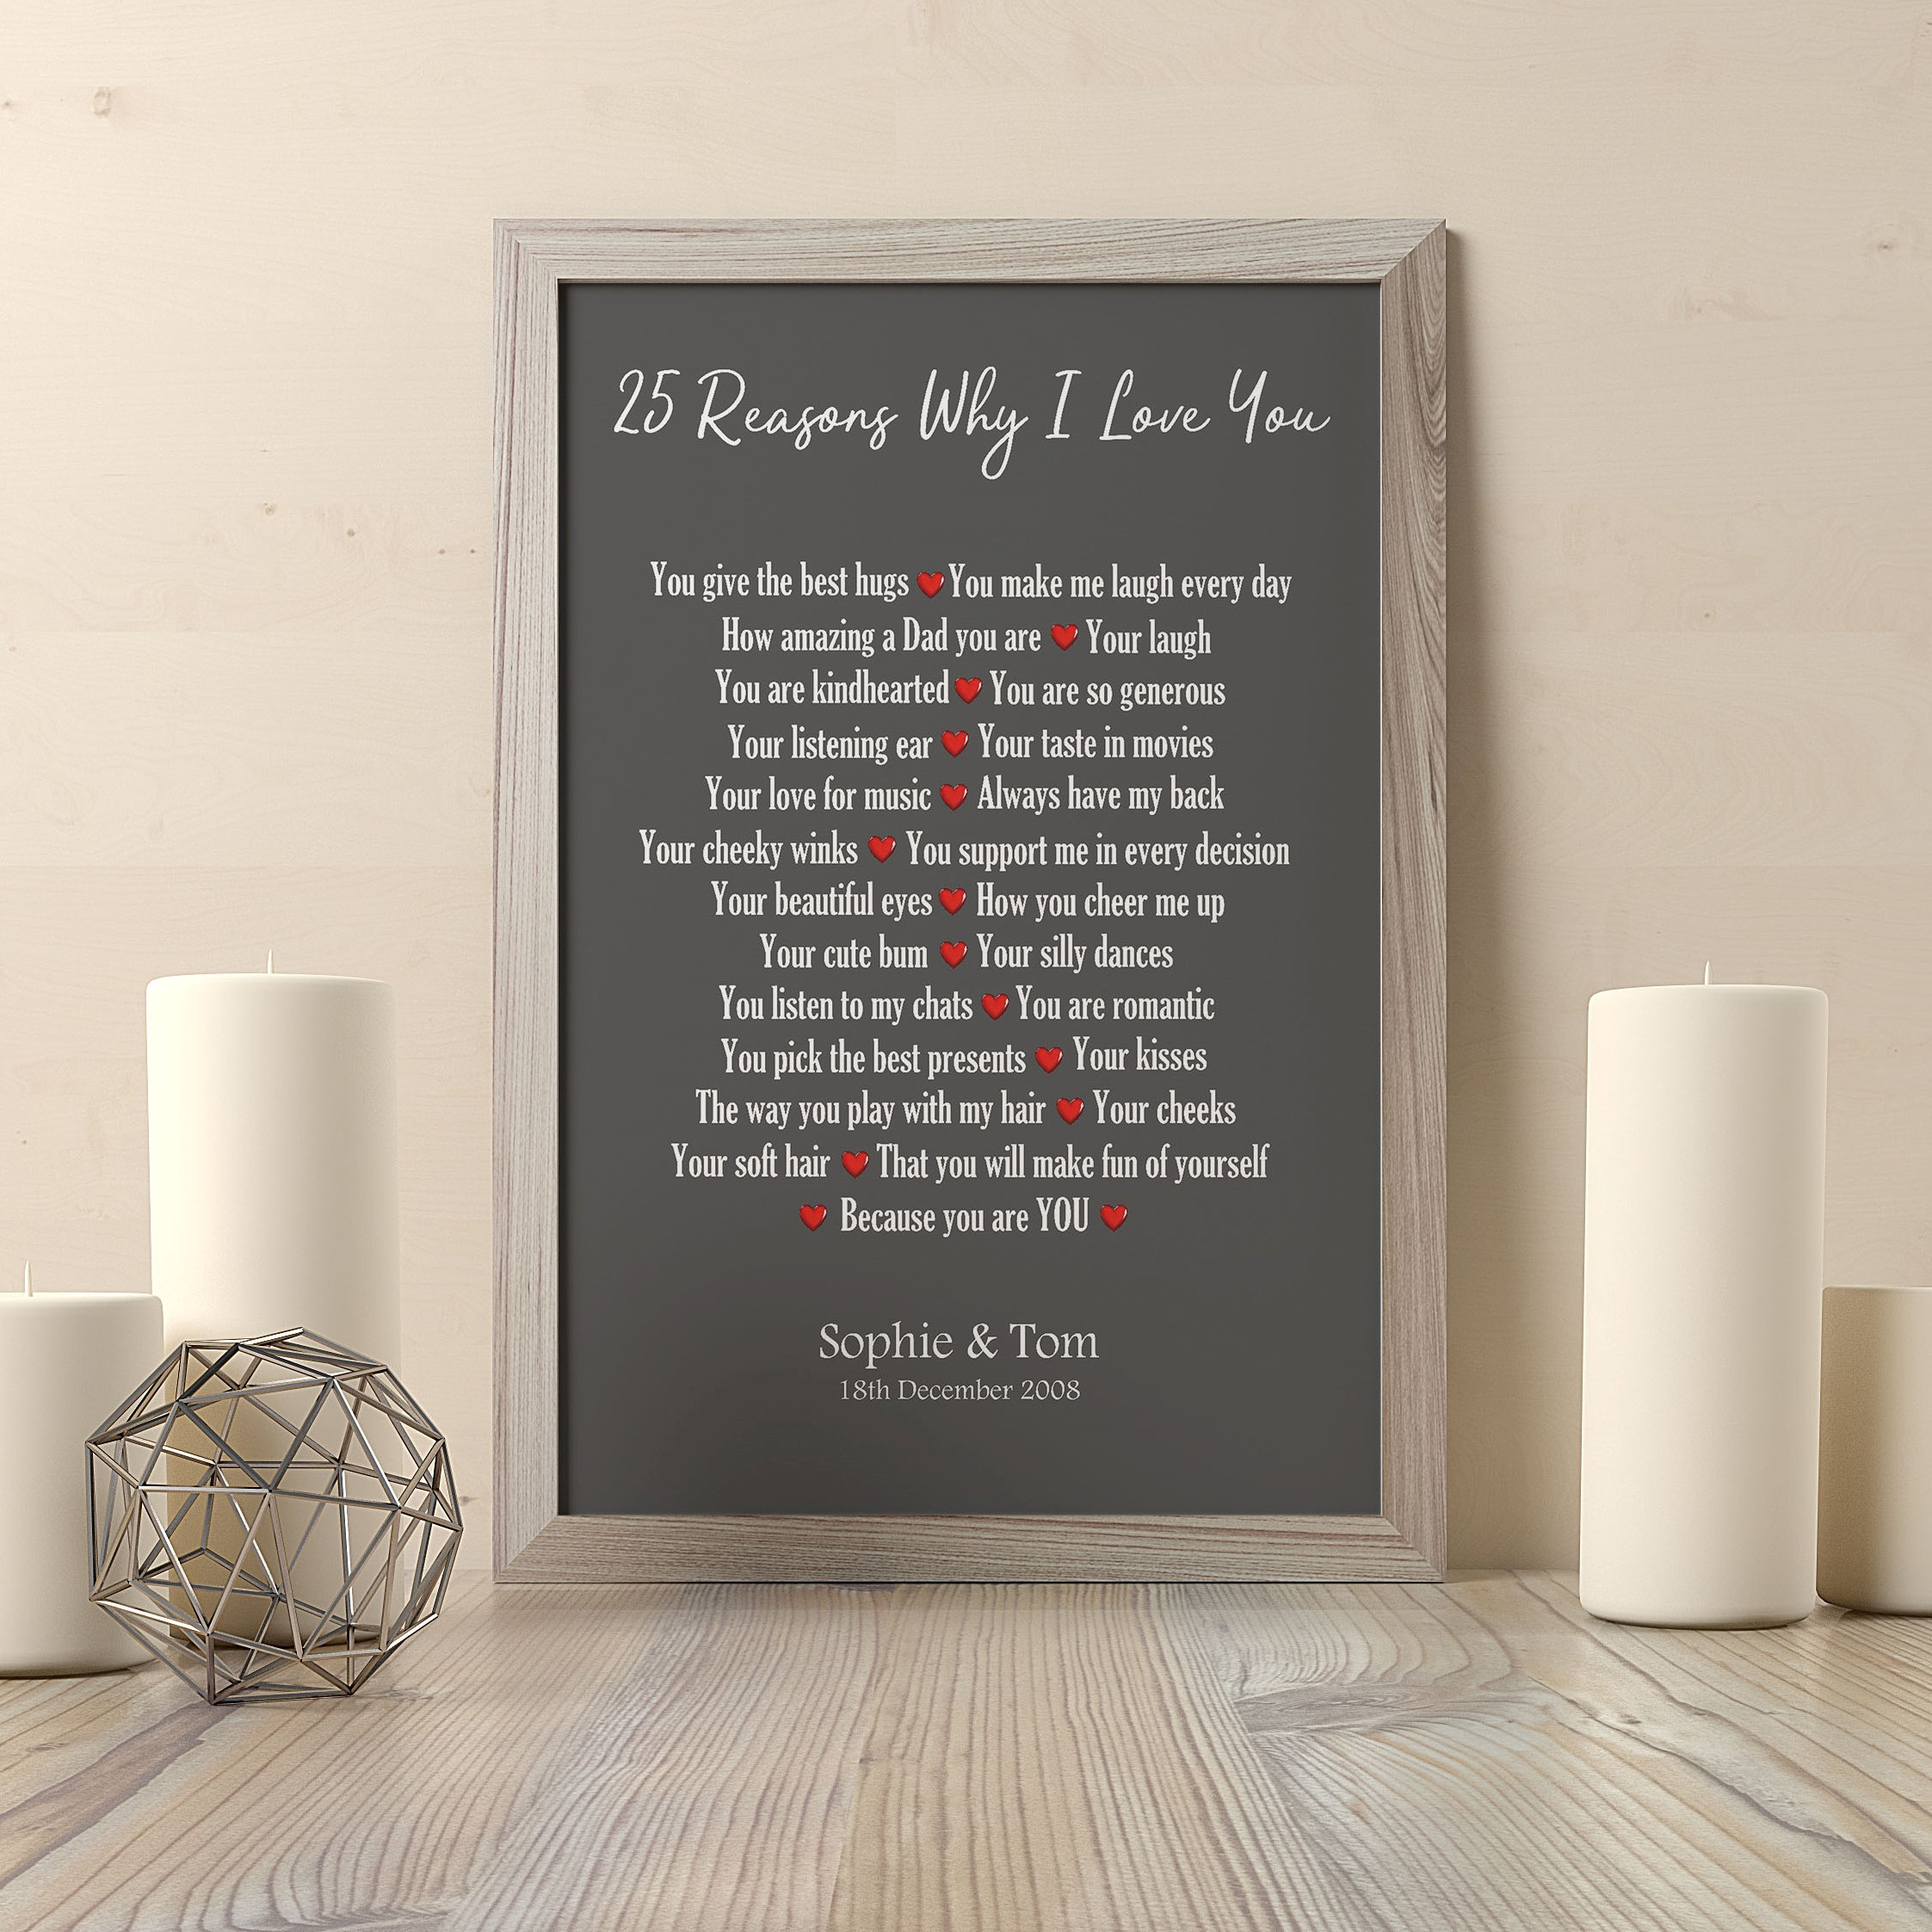 Personalised 25 Reasons Why I Love You Print